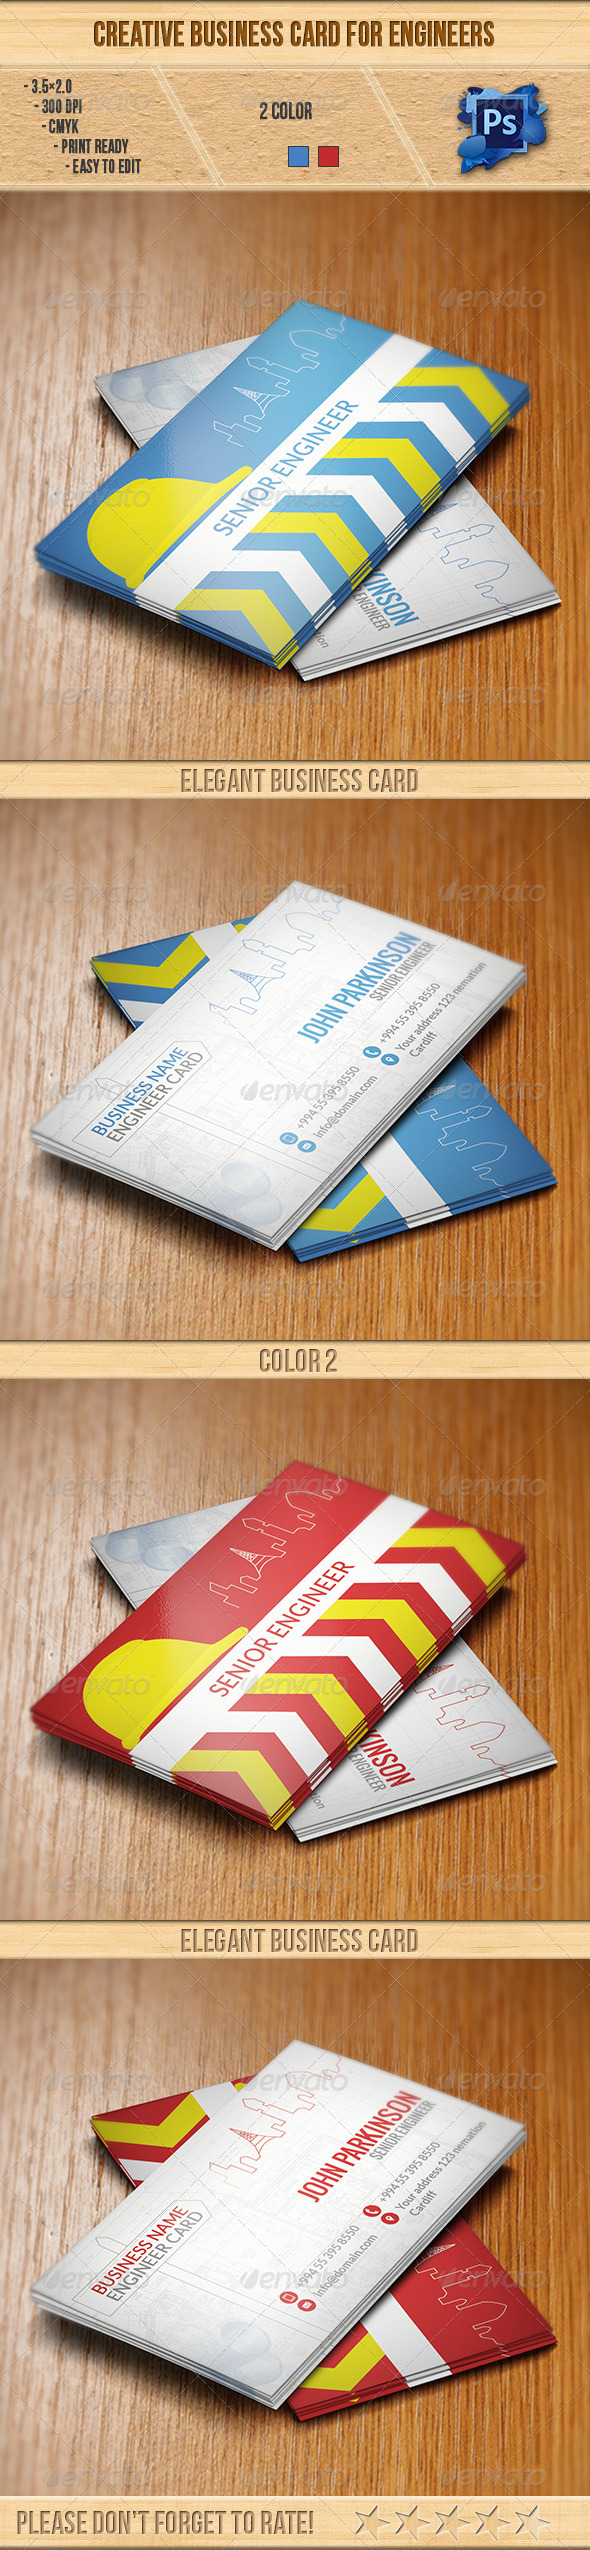 Creative Business Card for Engineers - Creative Business Cards